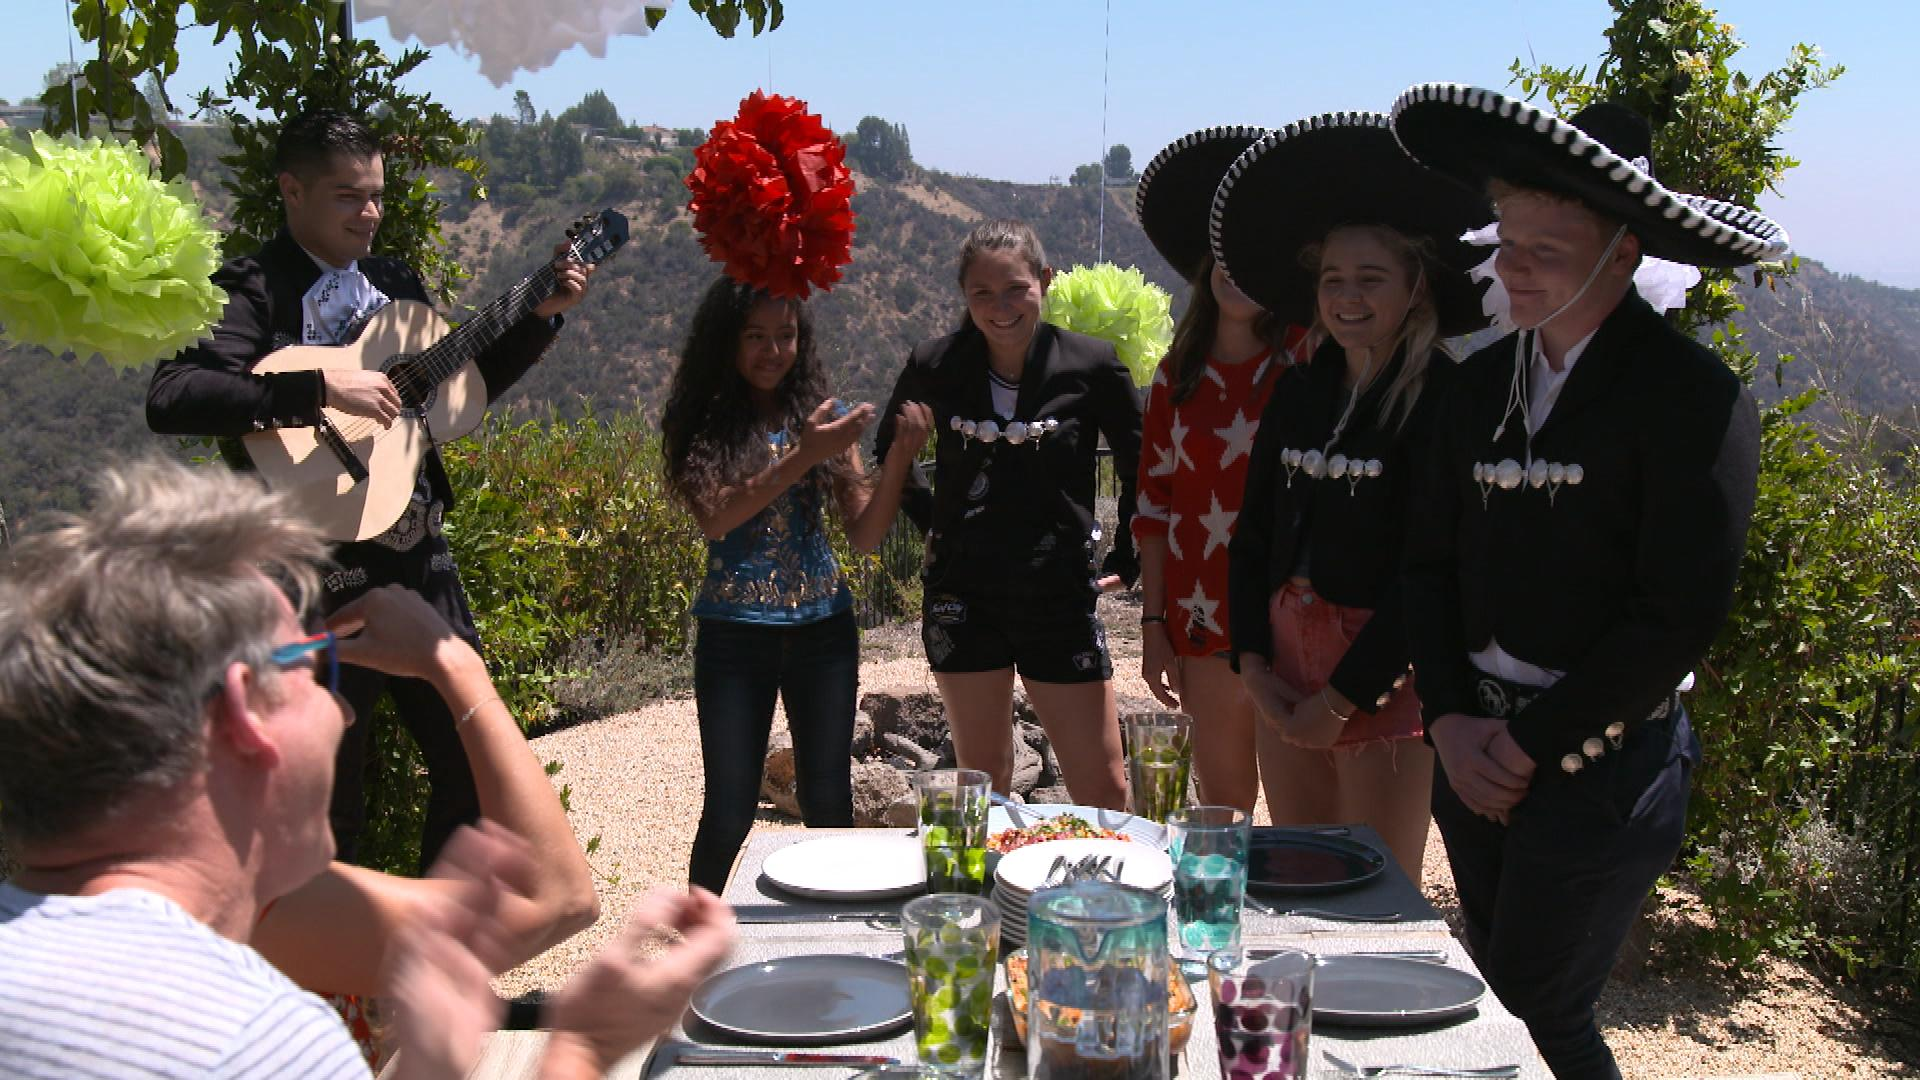 Catch all new #MATRB tomorrow at 7:45 AM on #CBBC - and check out what this fiesta is all about ! https://t.co/dcDBK77KFa